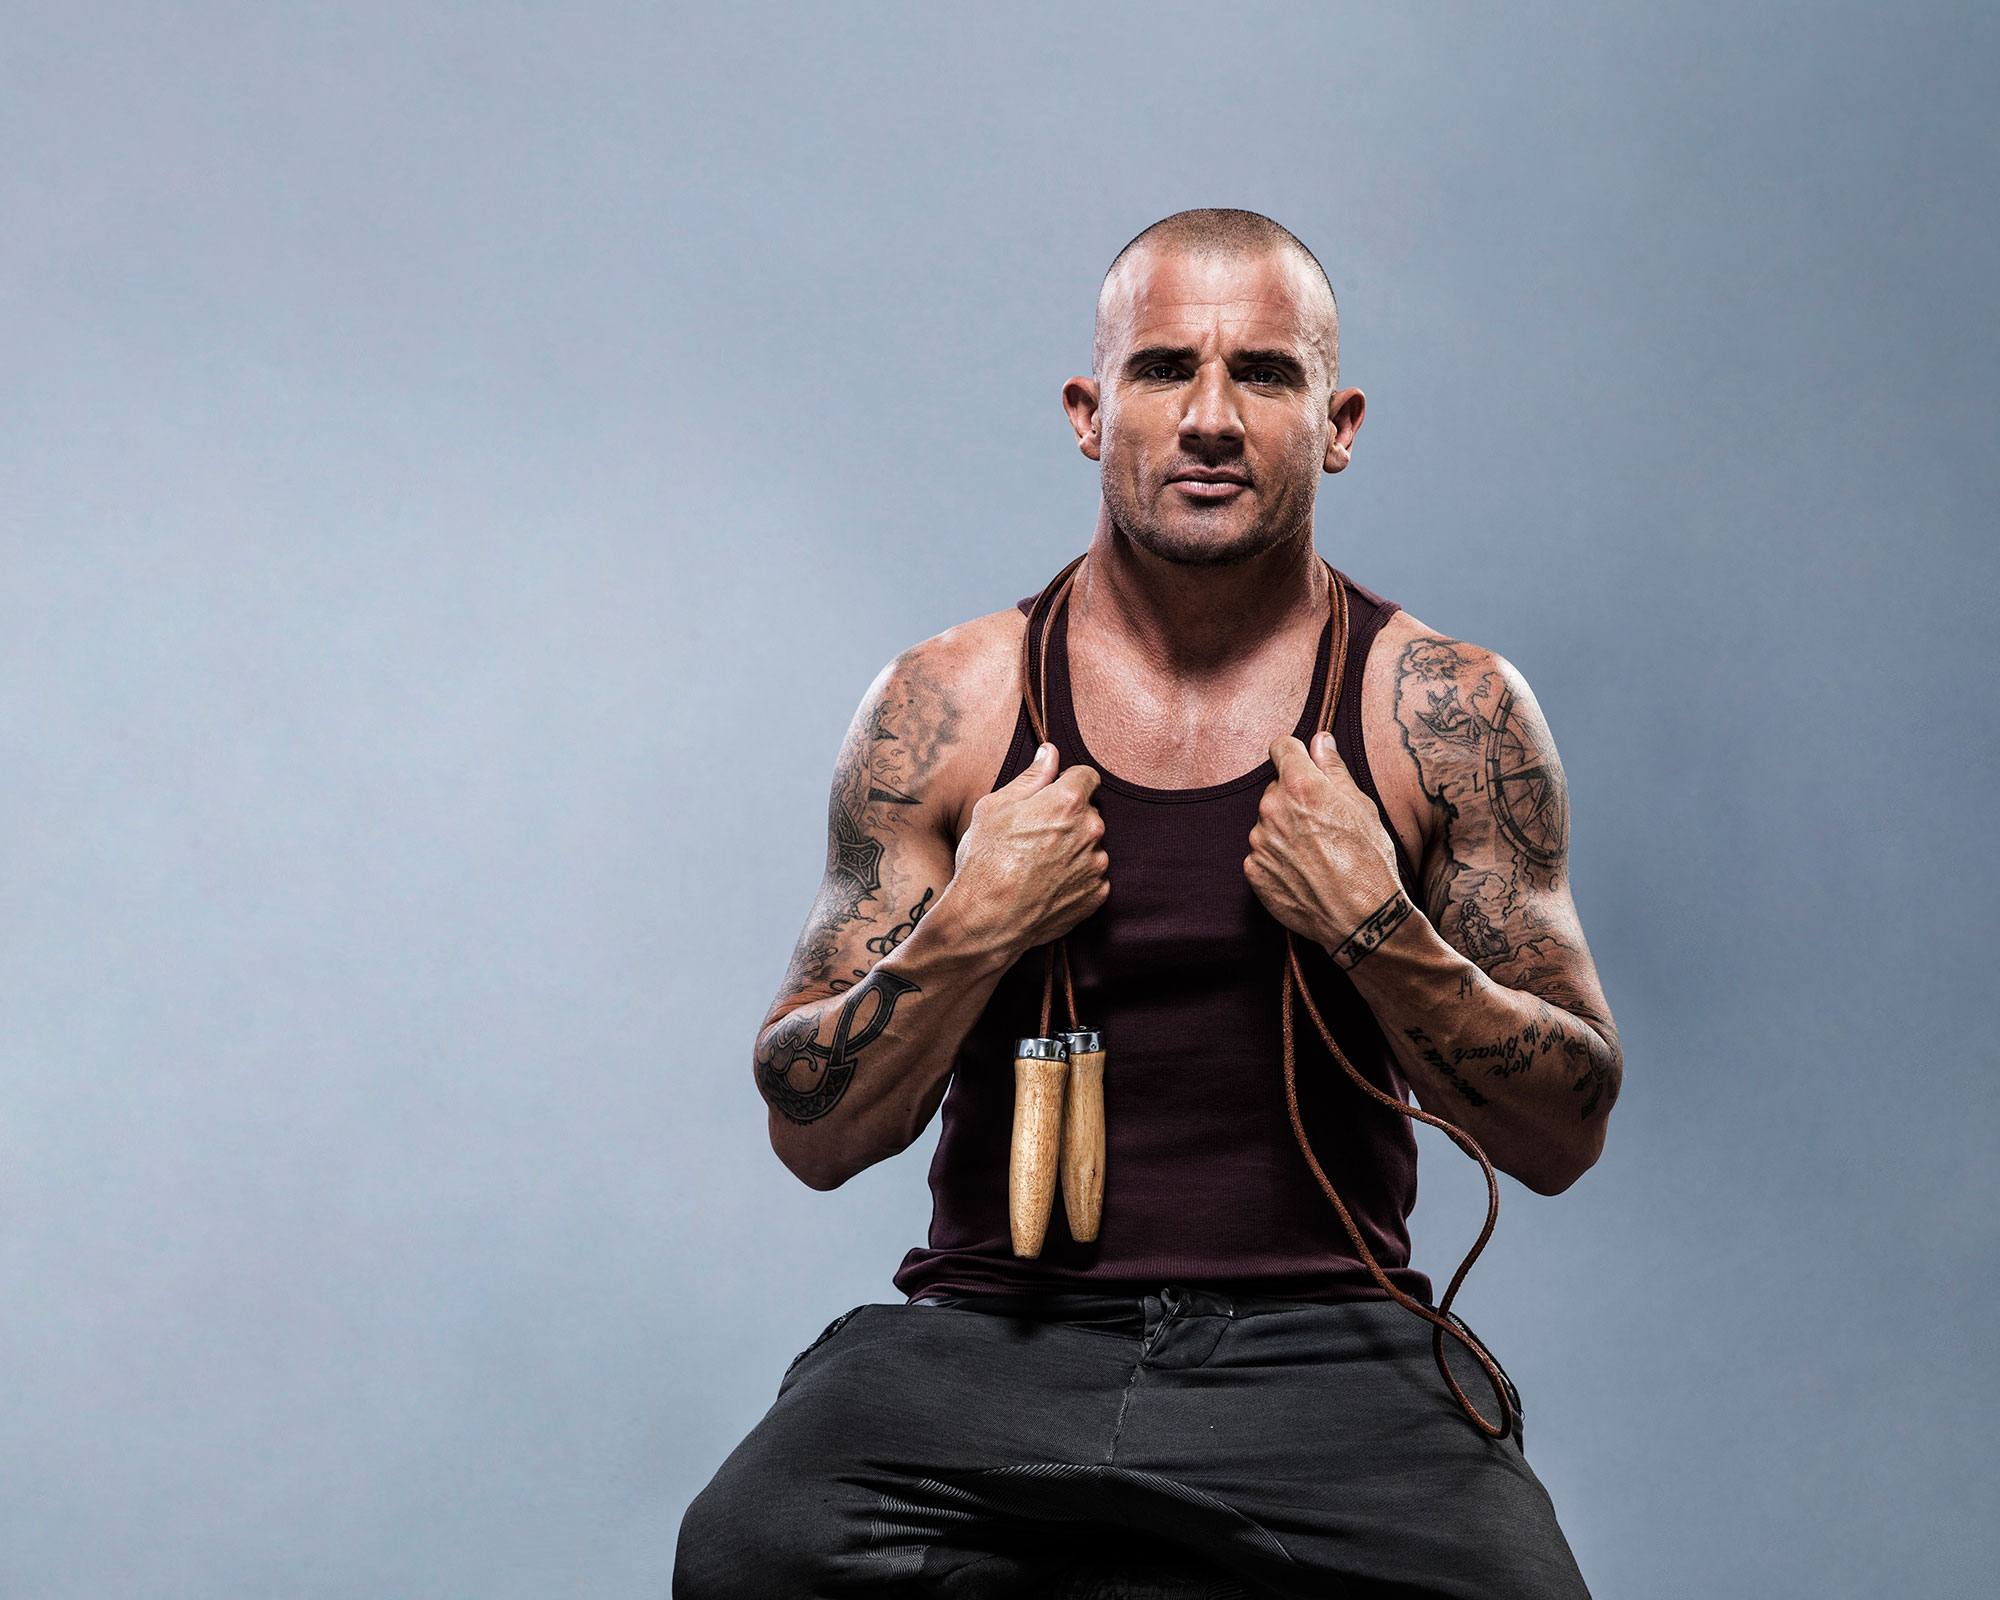 A New Break For Dominic Purcell | 24Life